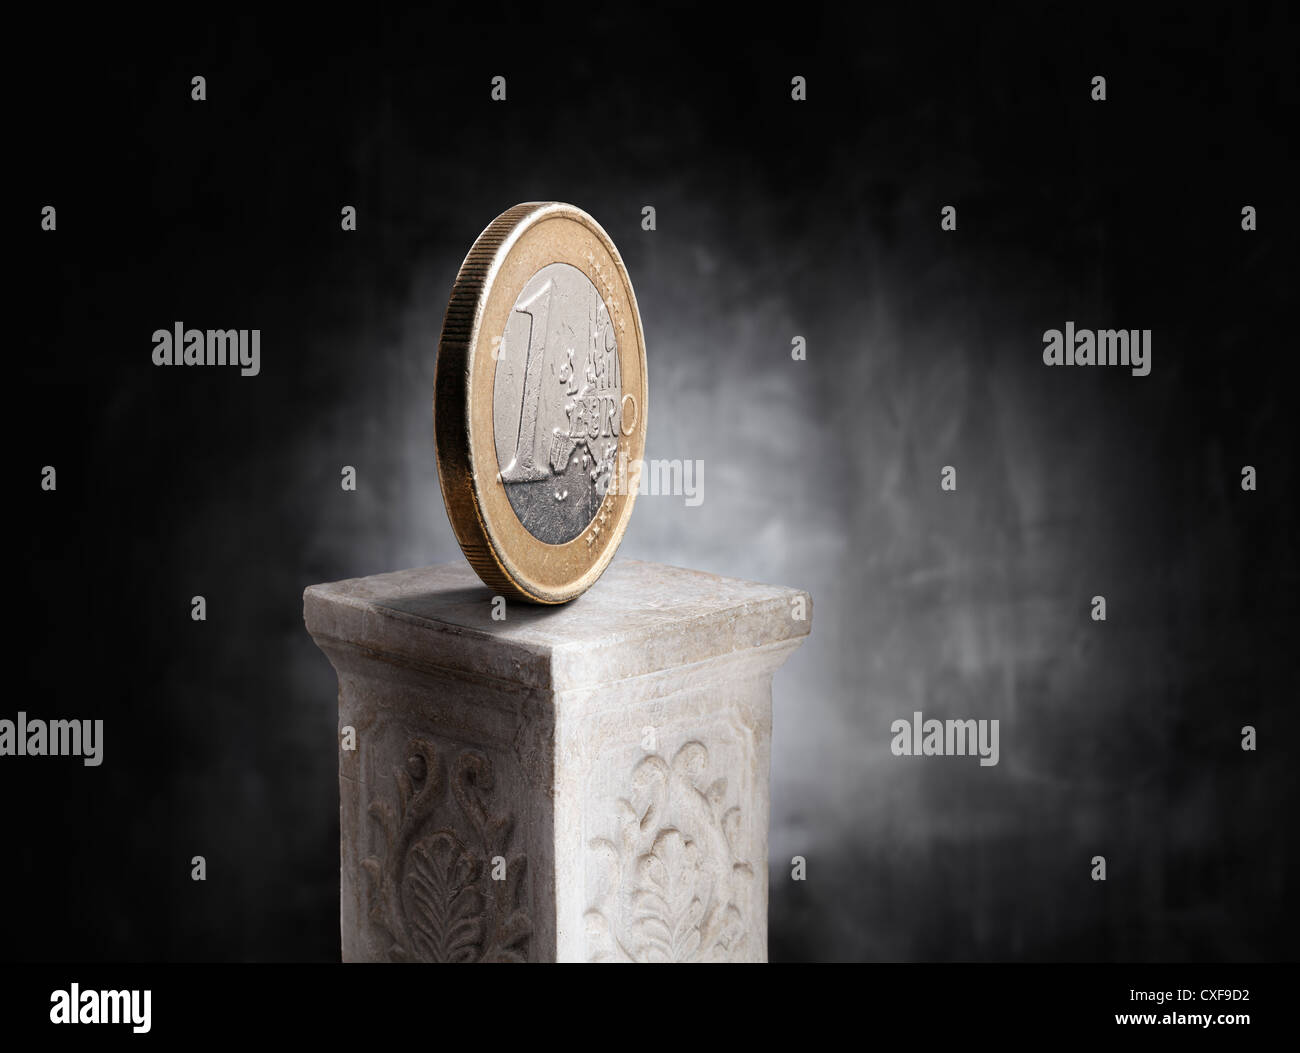 Euro coin on top of a plaster column. - Stock Image